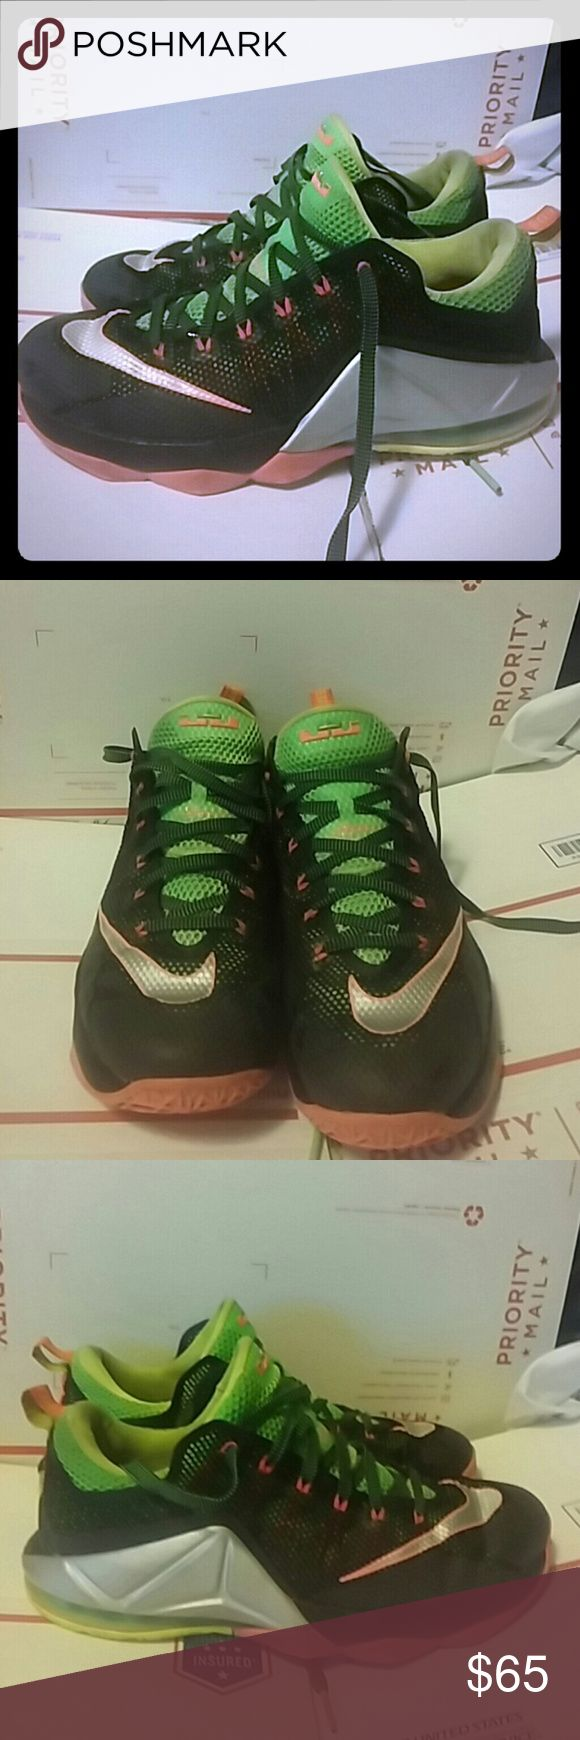 Nike Lebron XII REMIX Low Men's SZ 11 SZ 11 724557-003 Some moderate wear and dirt. Nike Shoes Sneakers